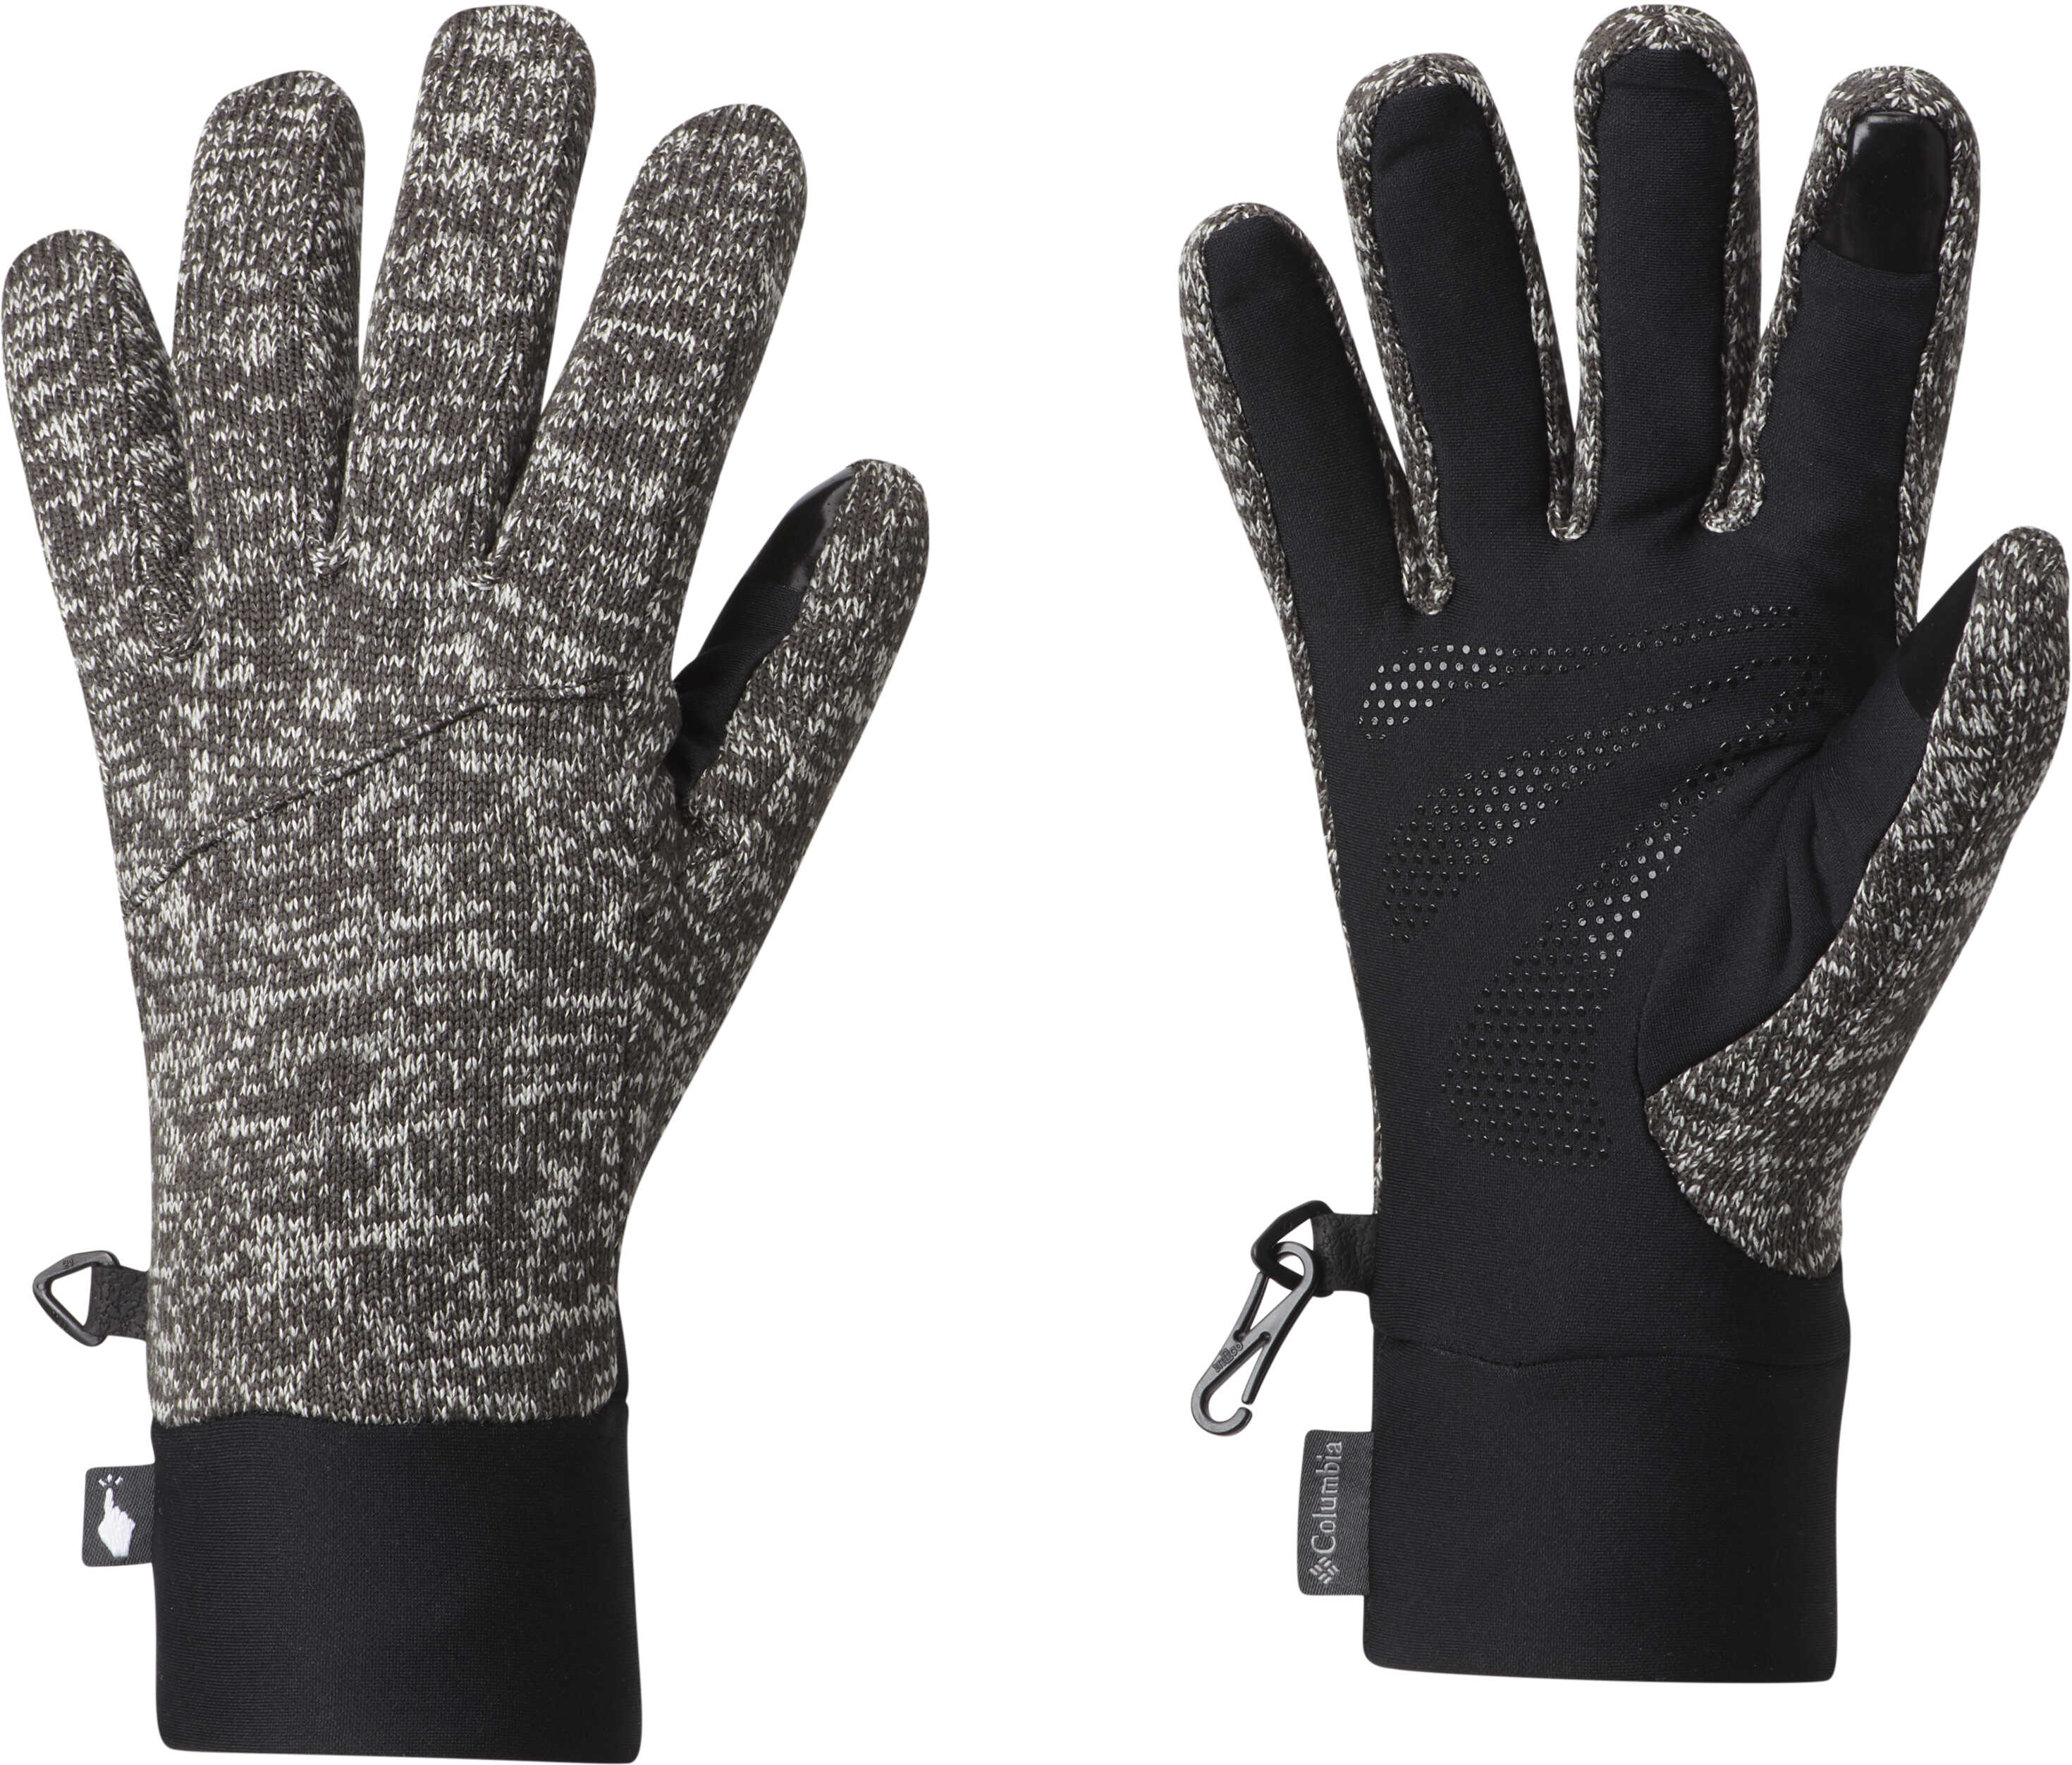 Columbia M Birch Woods Glove-Shark,Black Shark,Black